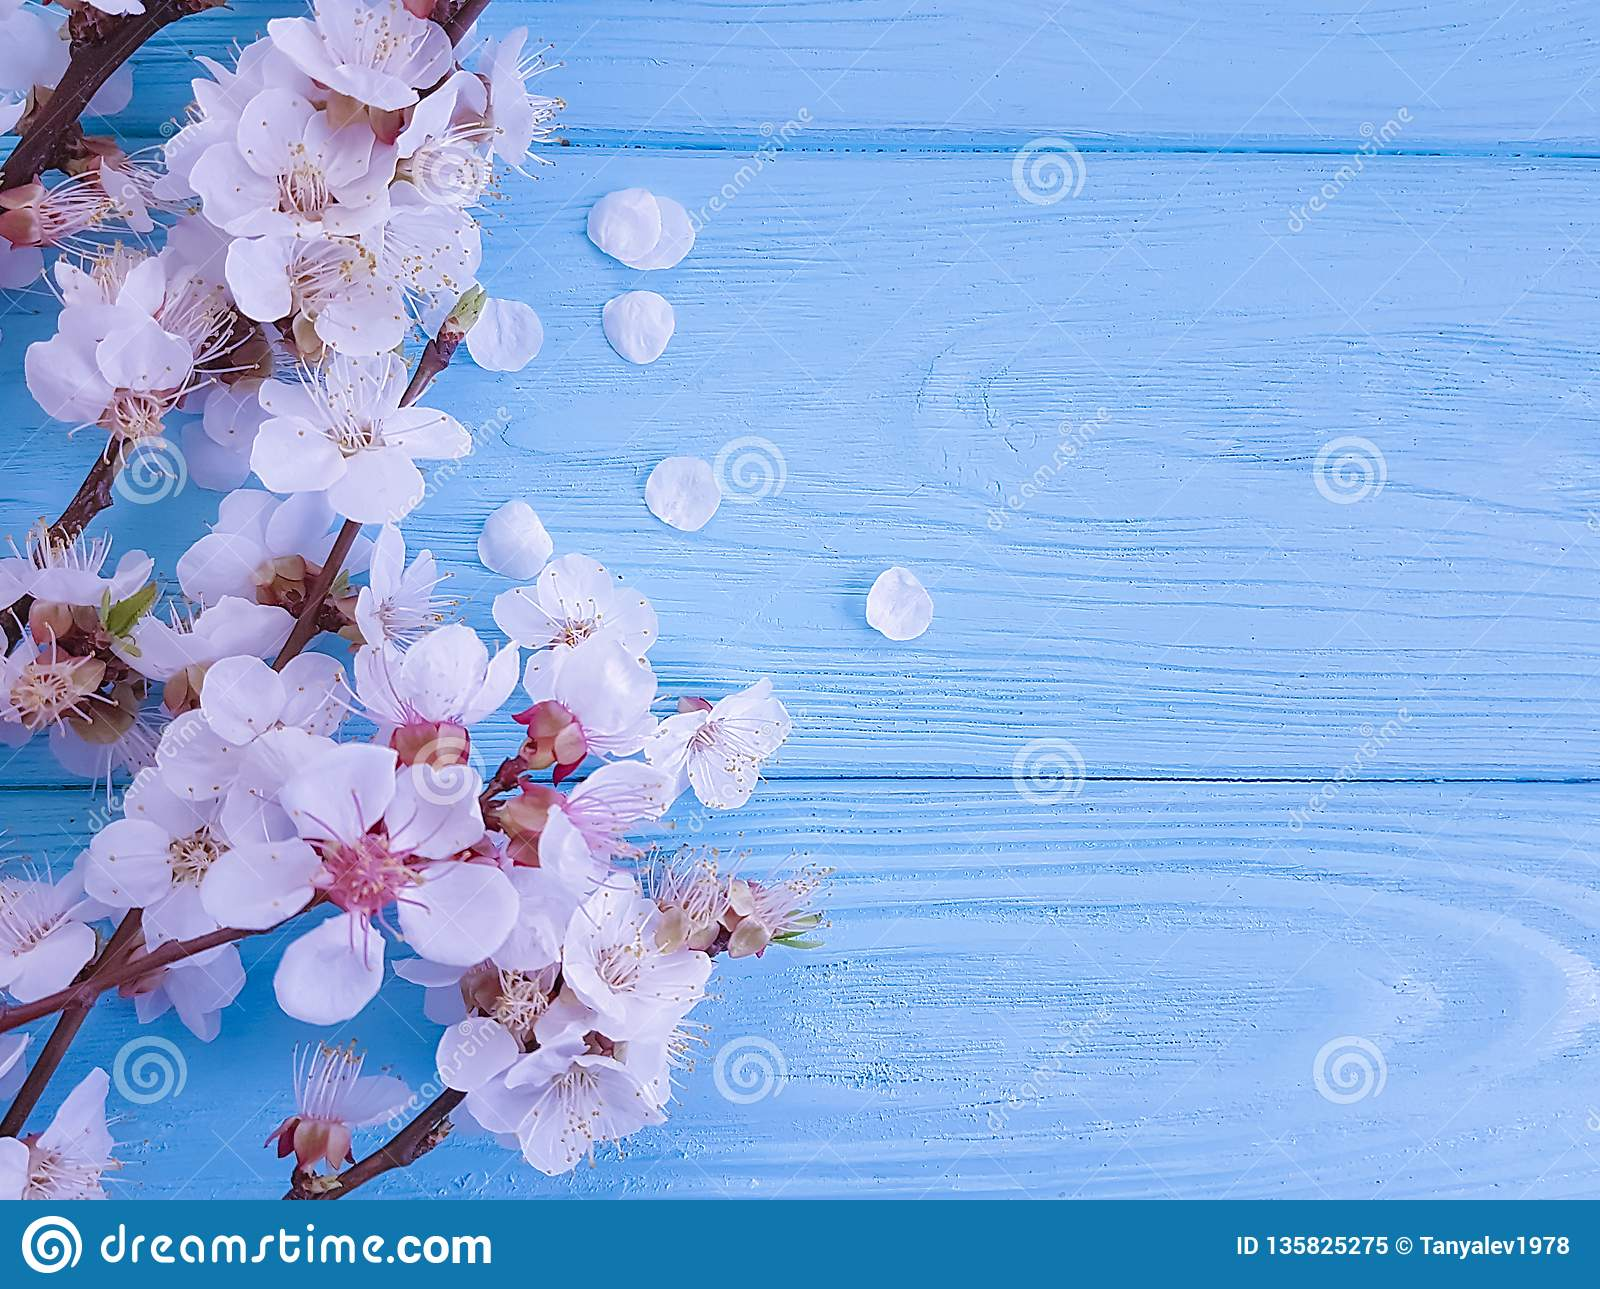 Cherry beautiful blossom may celebration branch springtime on blue wooden background